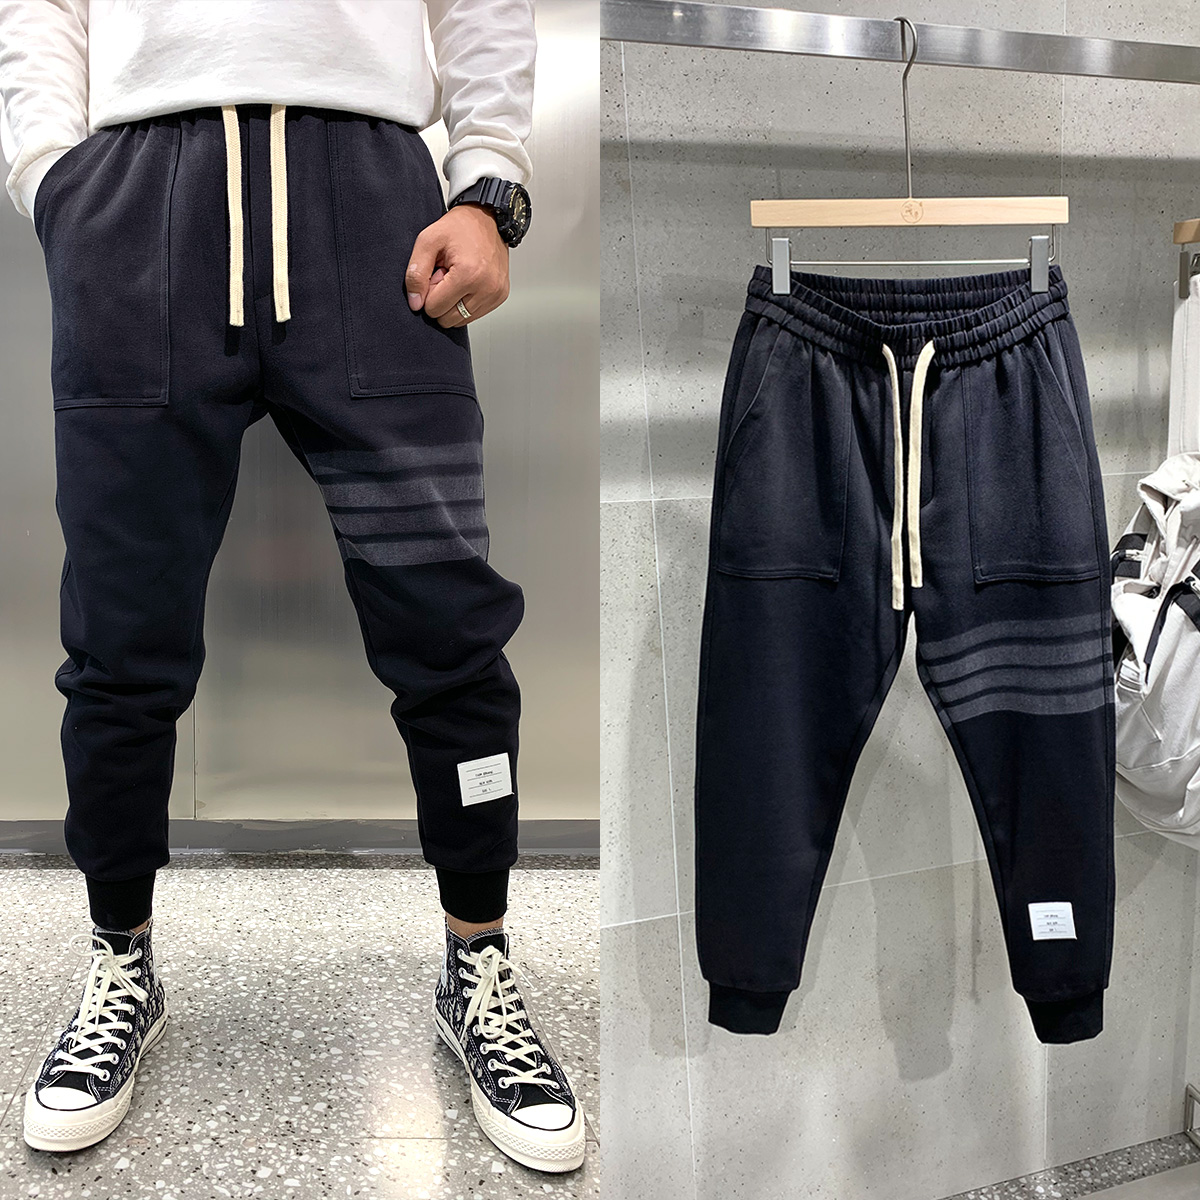 Sports wind casual pants men TB autumn and winter new water wash do old gradual layer color tie pants youth plus velvet long pants